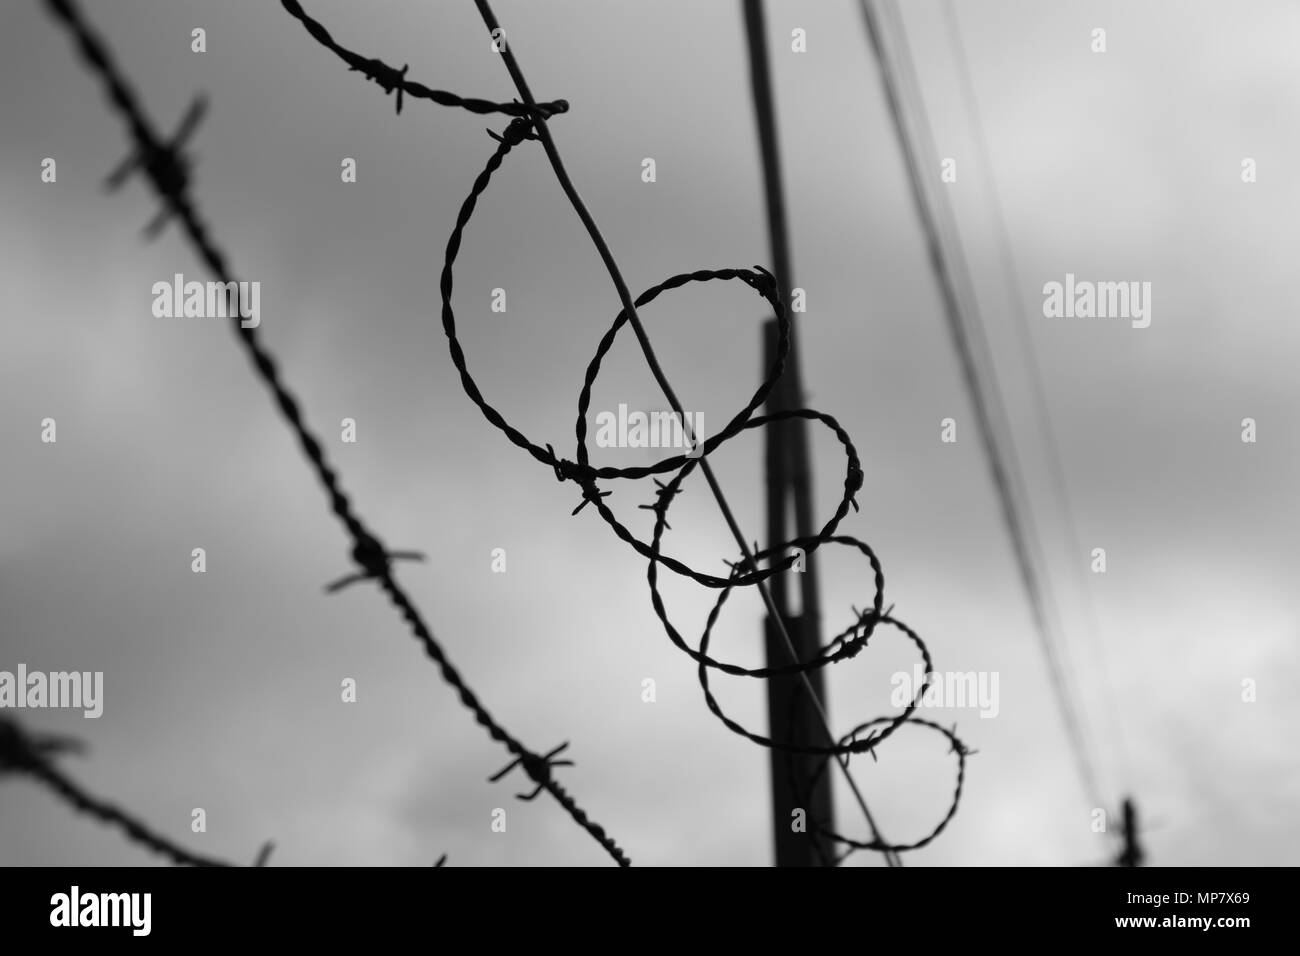 The sky behind barbwire. Black and white. - Stock Image